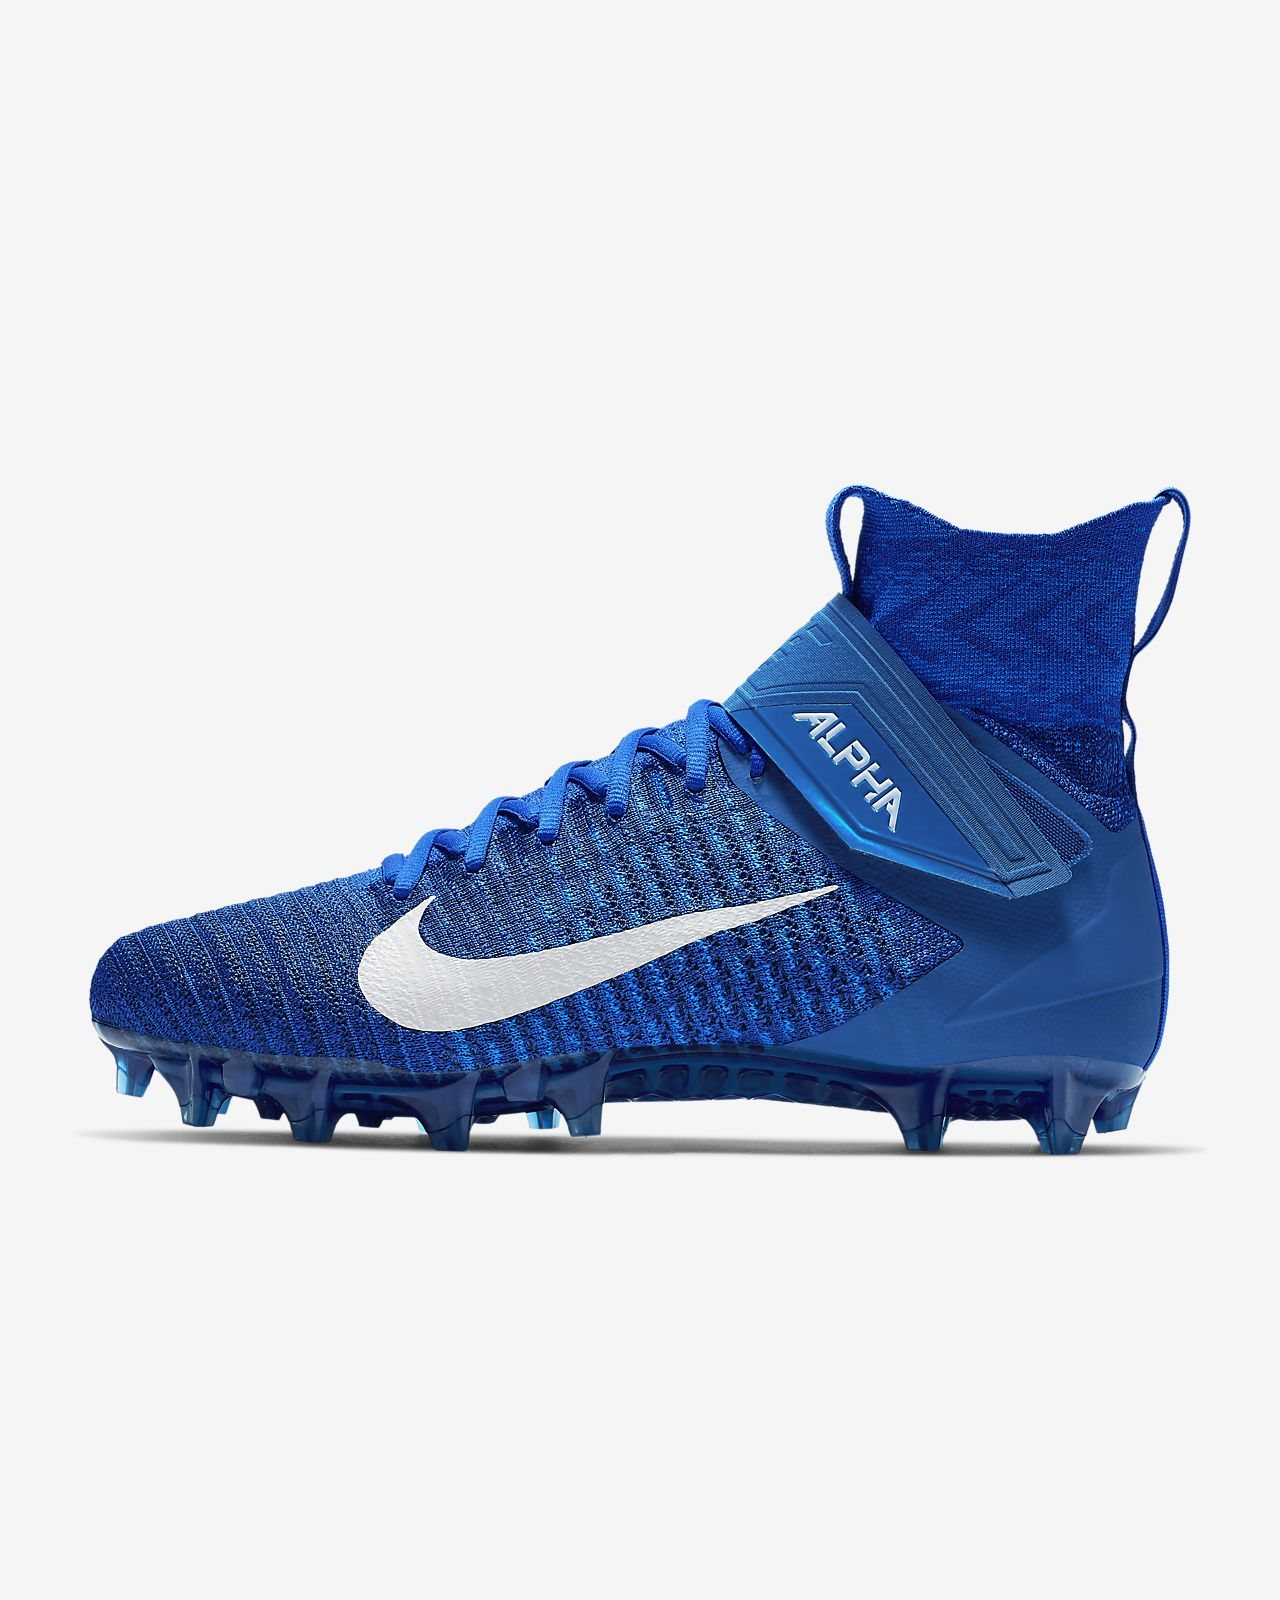 check out 169cc 02238 ... Nike Alpha Menace Elite 2 Mens Football Cleat